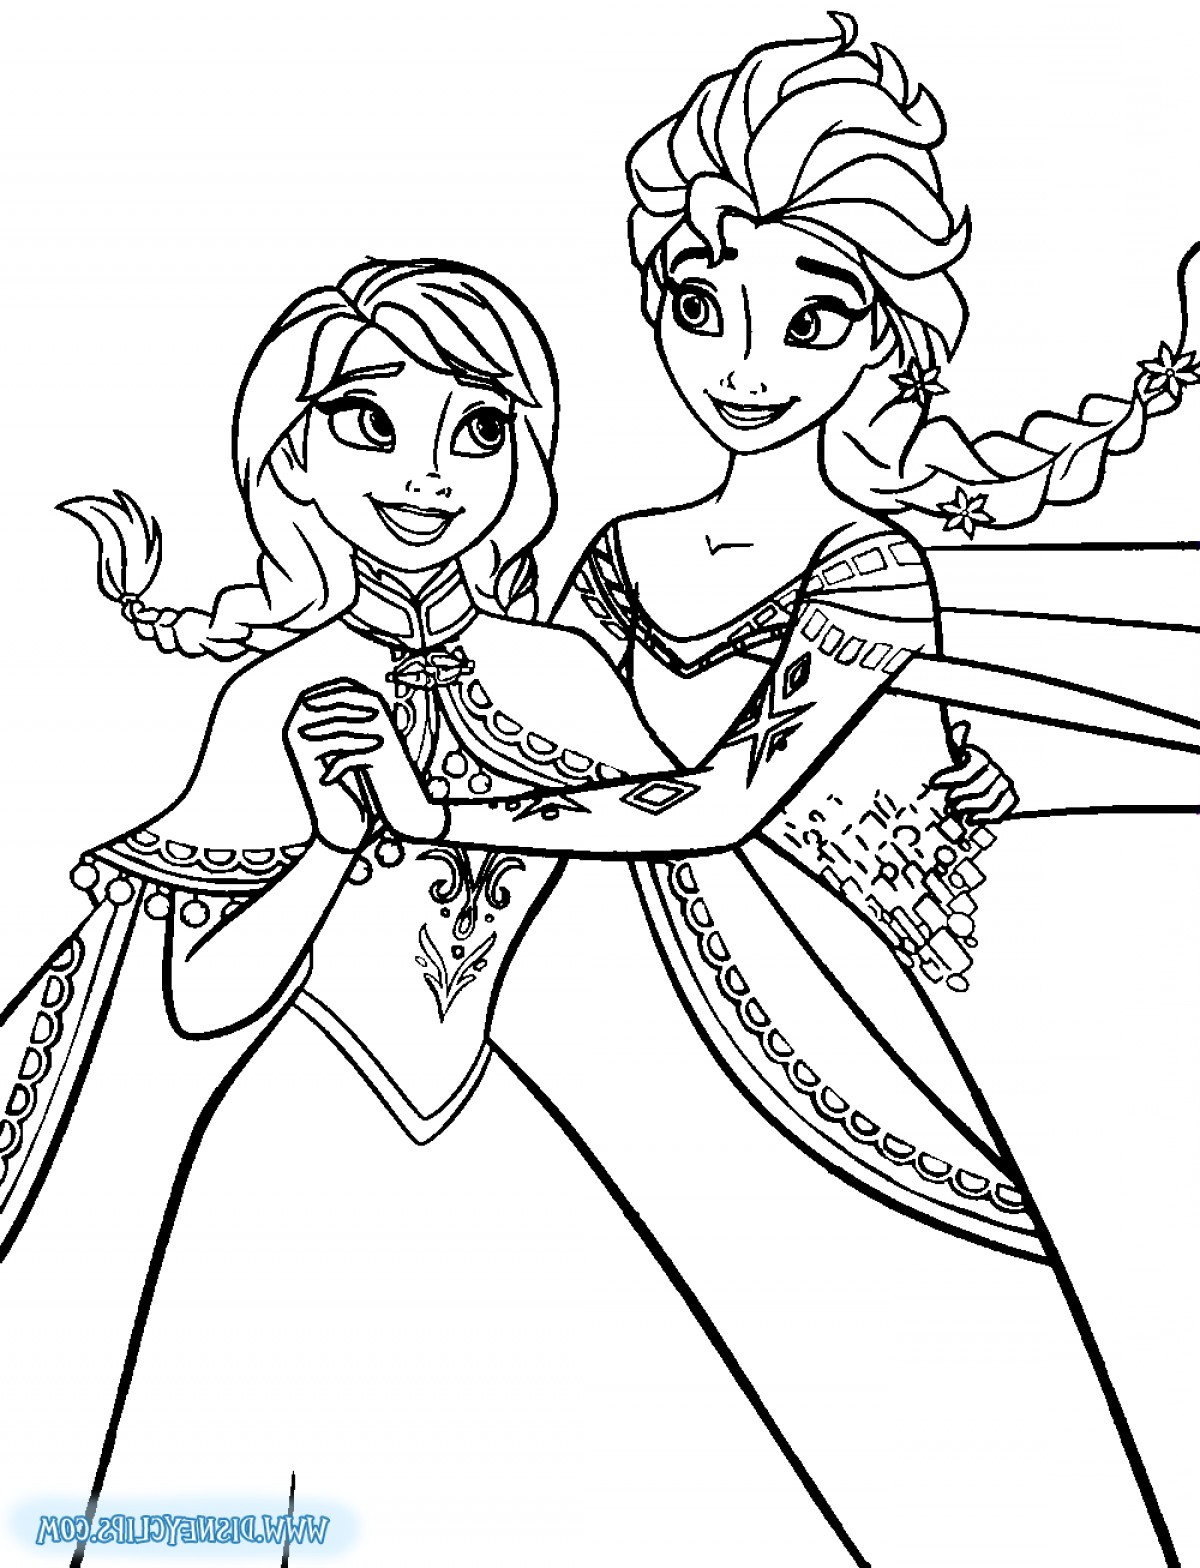 Elsa clipart black and white picture library download Crowning Clipart Frozen Coloring Page Elsa | SOIDERGI picture library download